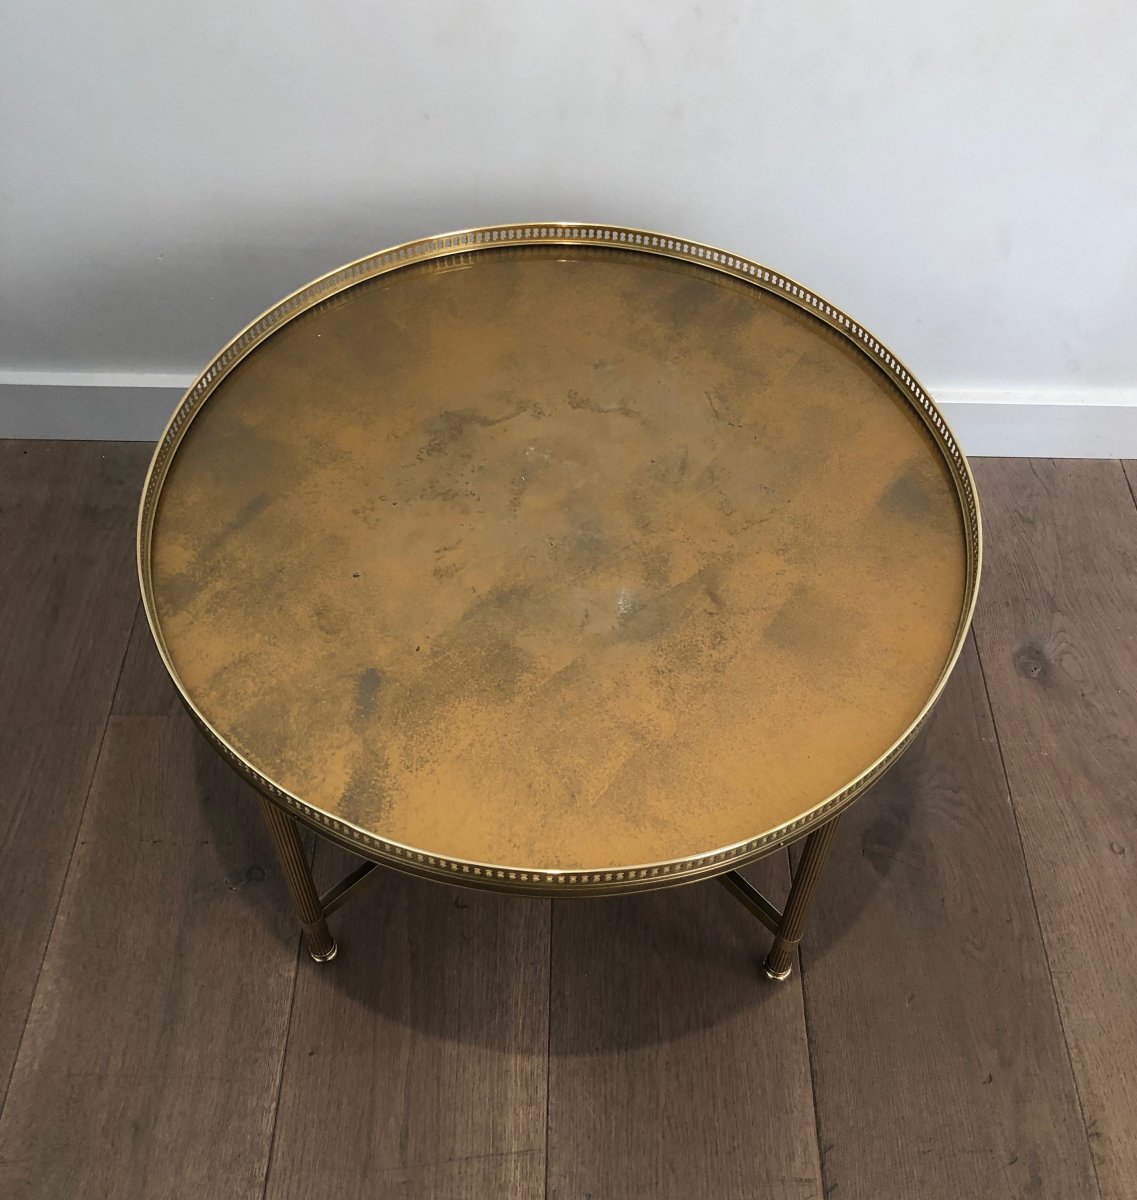 Maison Jansen. Neoclassical Style Small Round Brass Coffee Table With Gold Top. French. 1940's-photo-1